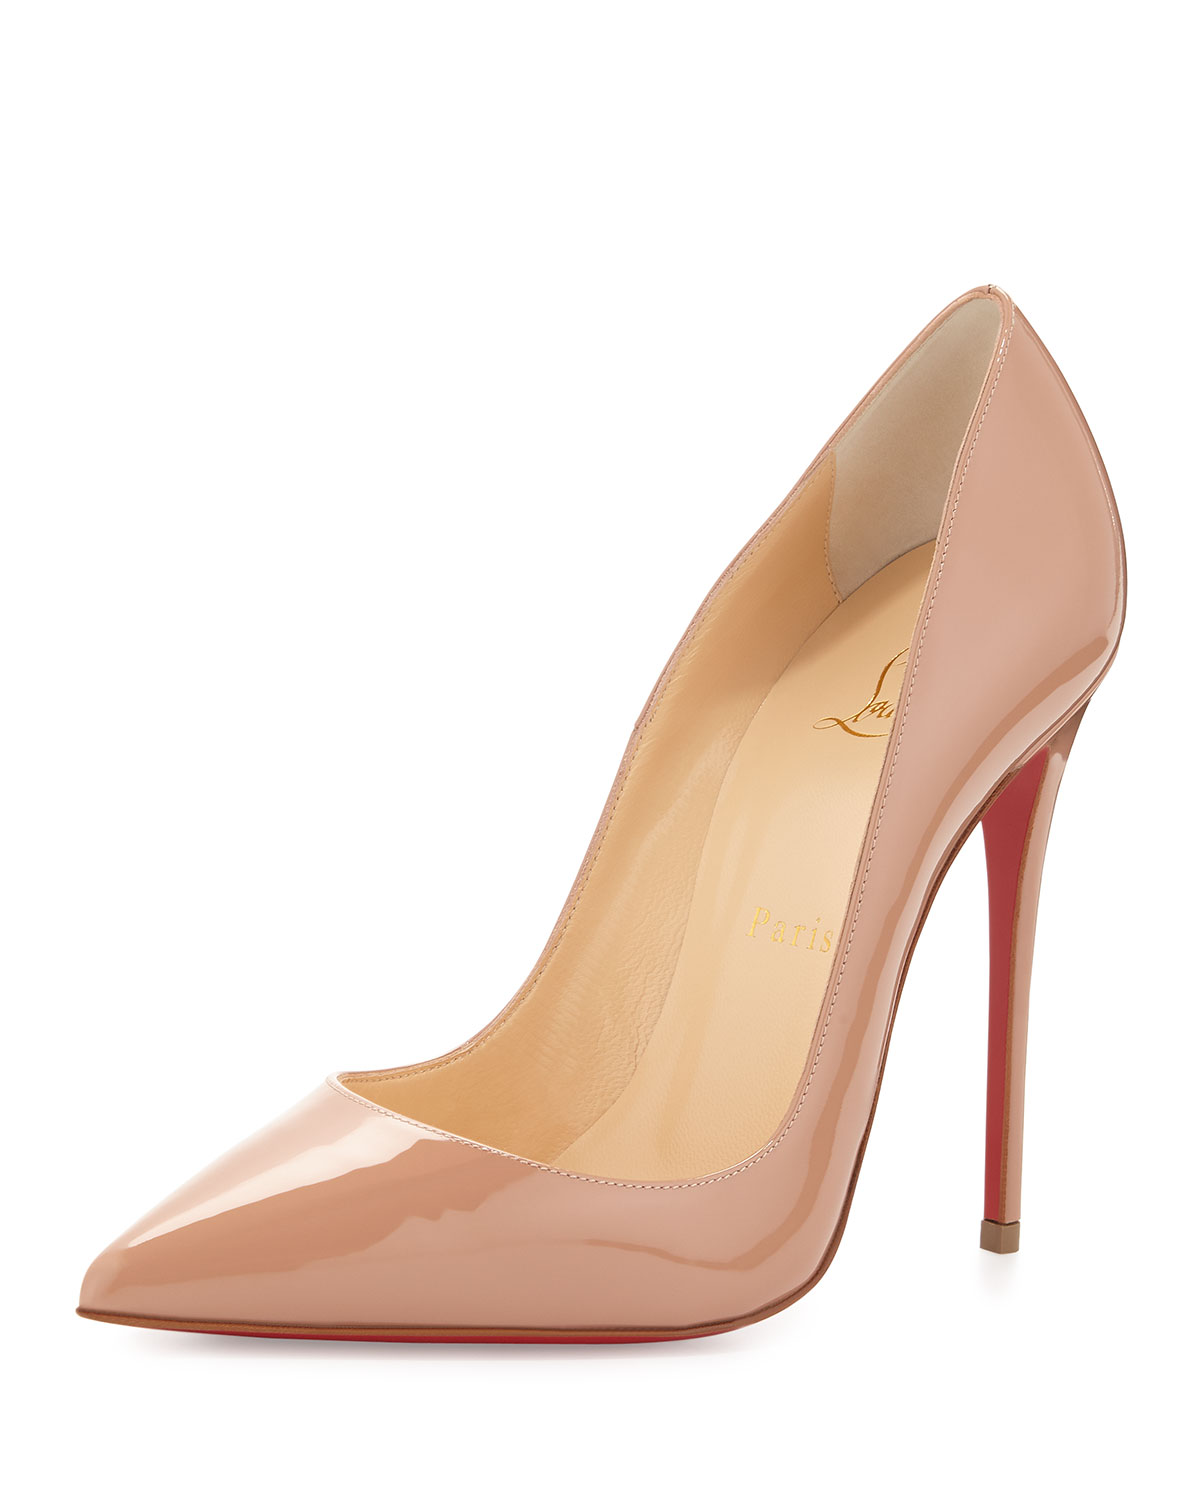 new products 2ed34 6c3bb So Kate Patent Red Sole Pump